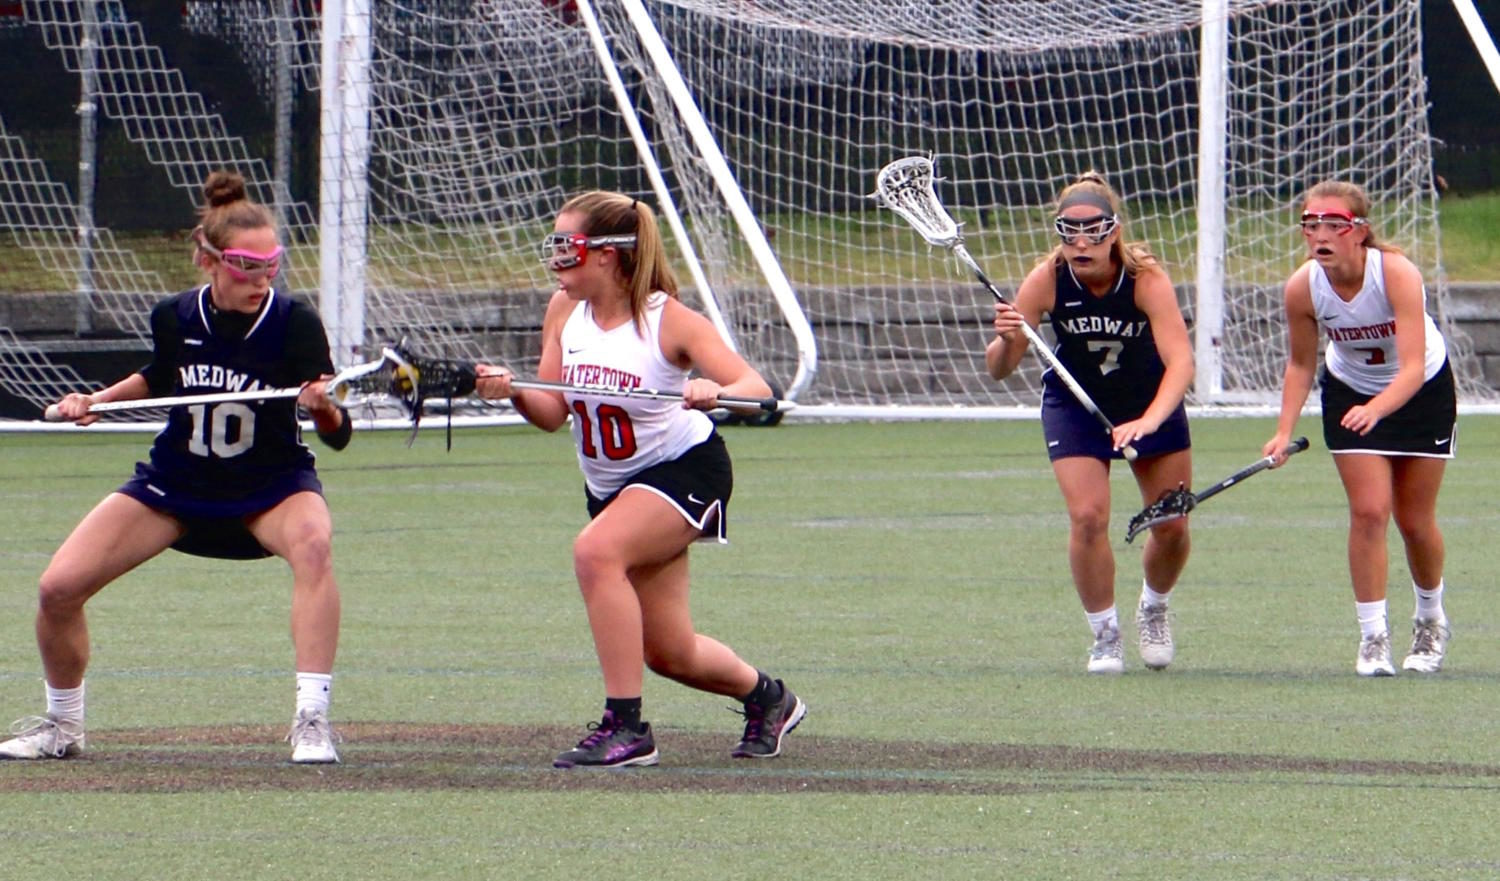 The Watertown High girls' lacrosse team (in white) takes on Medway in an MIAA East Division 2 tournament game at Victory Field on Tuesday, May 30, 2017. The host Raiders (11-6) fell to Medway (12-6) in the first-round game, 10-4.